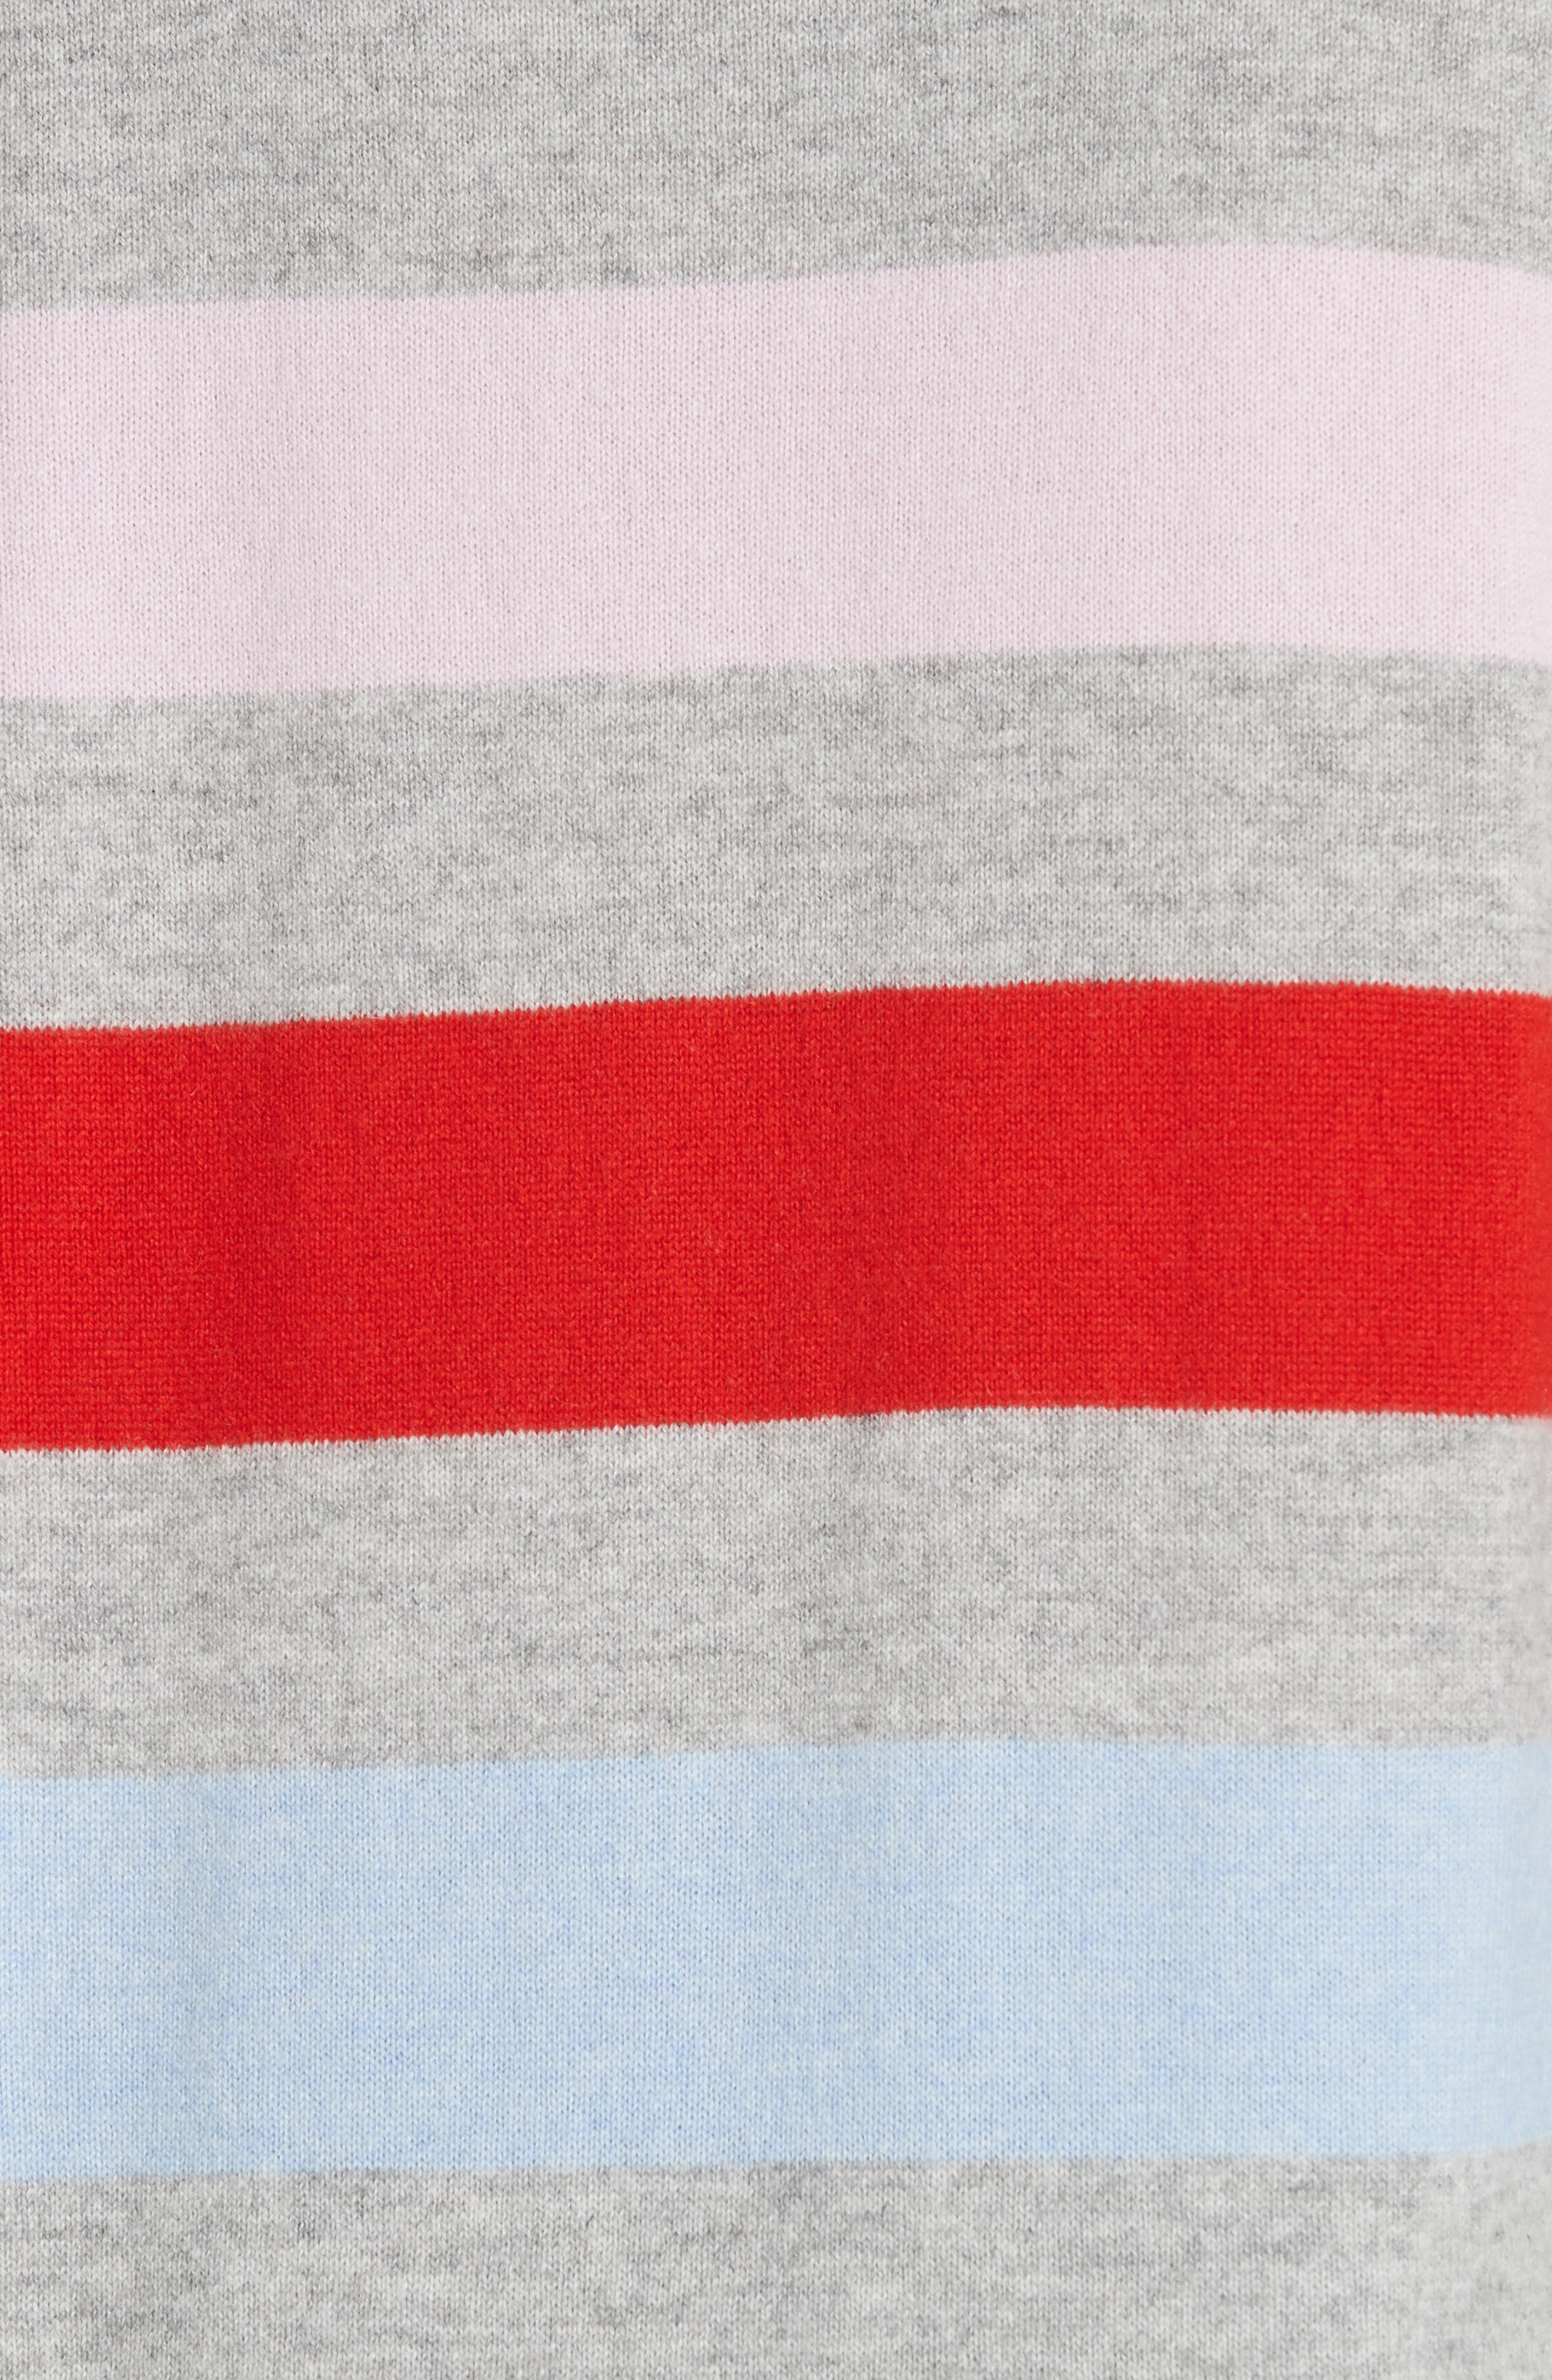 AAA Candy Stripe Cashmere Sweater,                             Alternate thumbnail 5, color,                             020